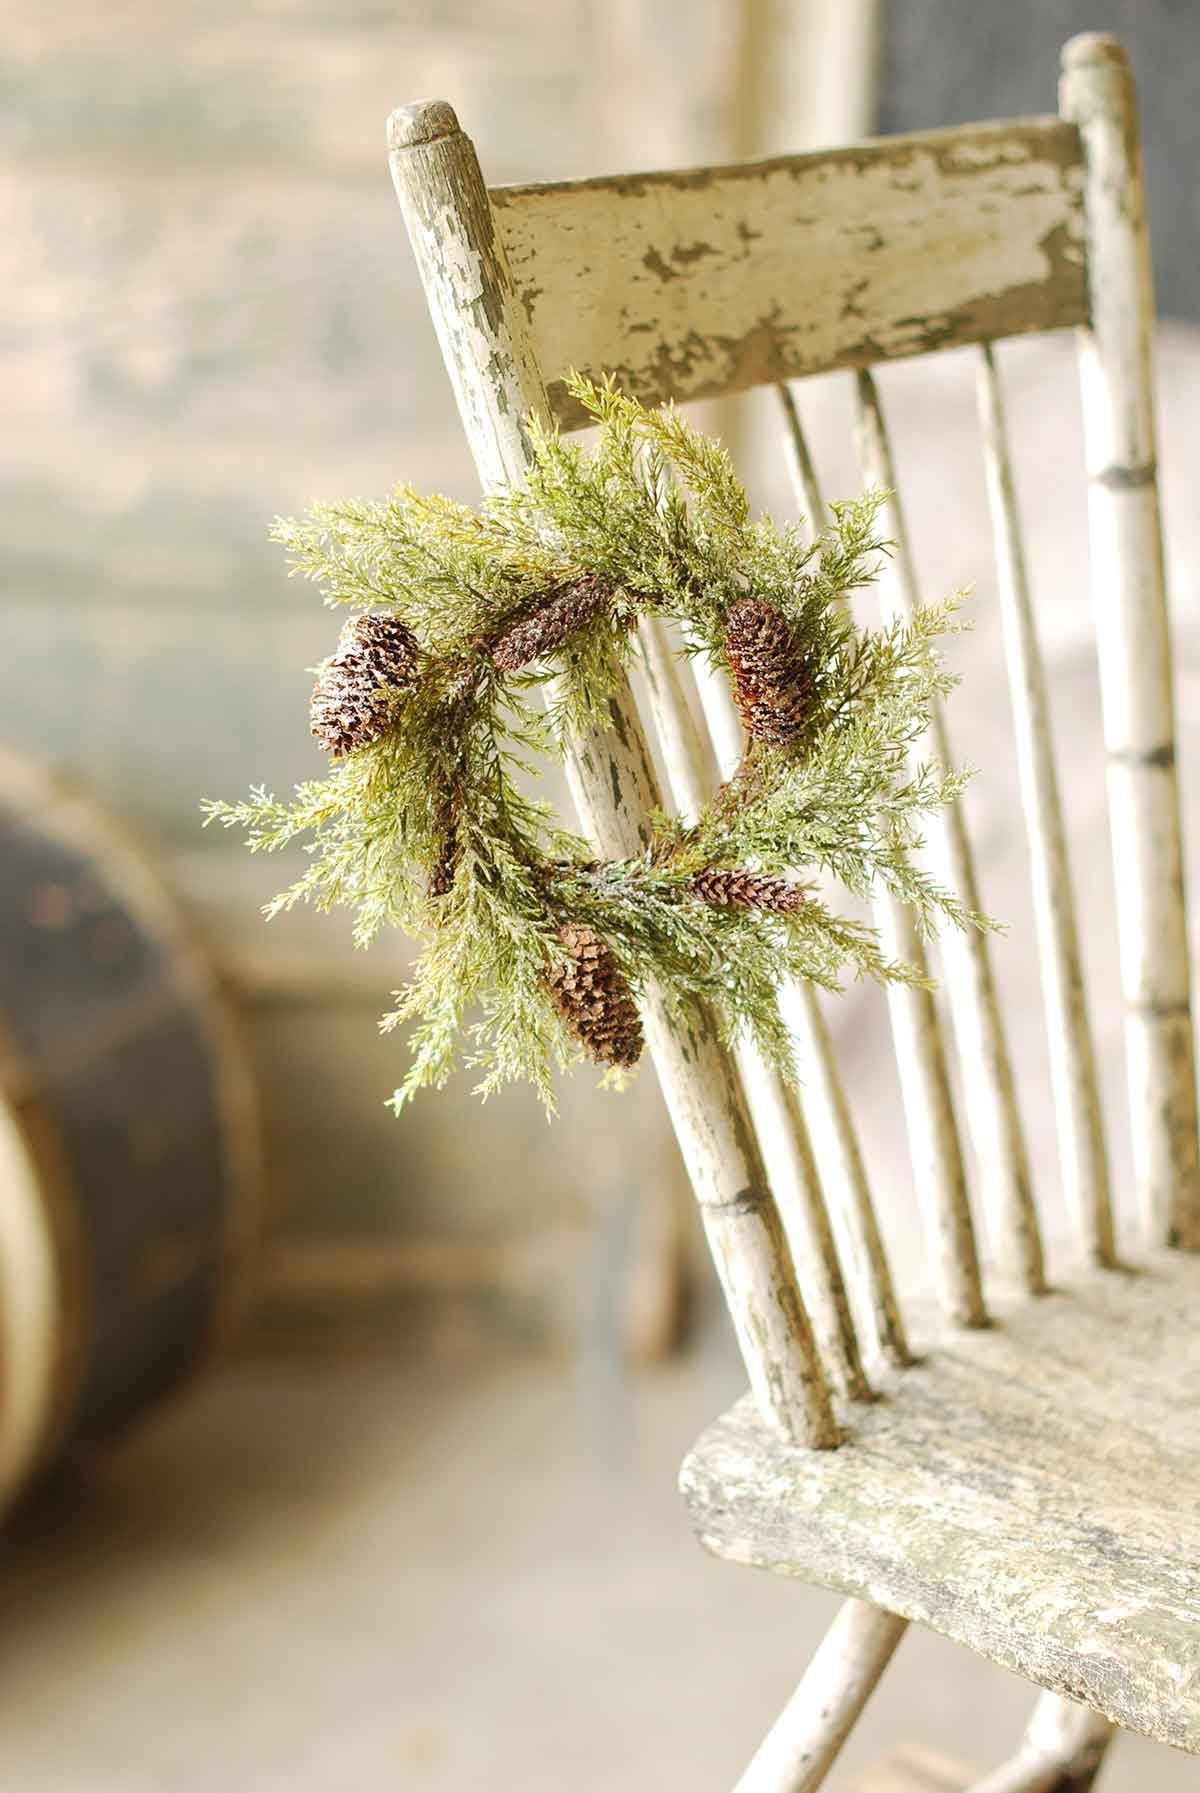 PRICKLY PINE RING 9"